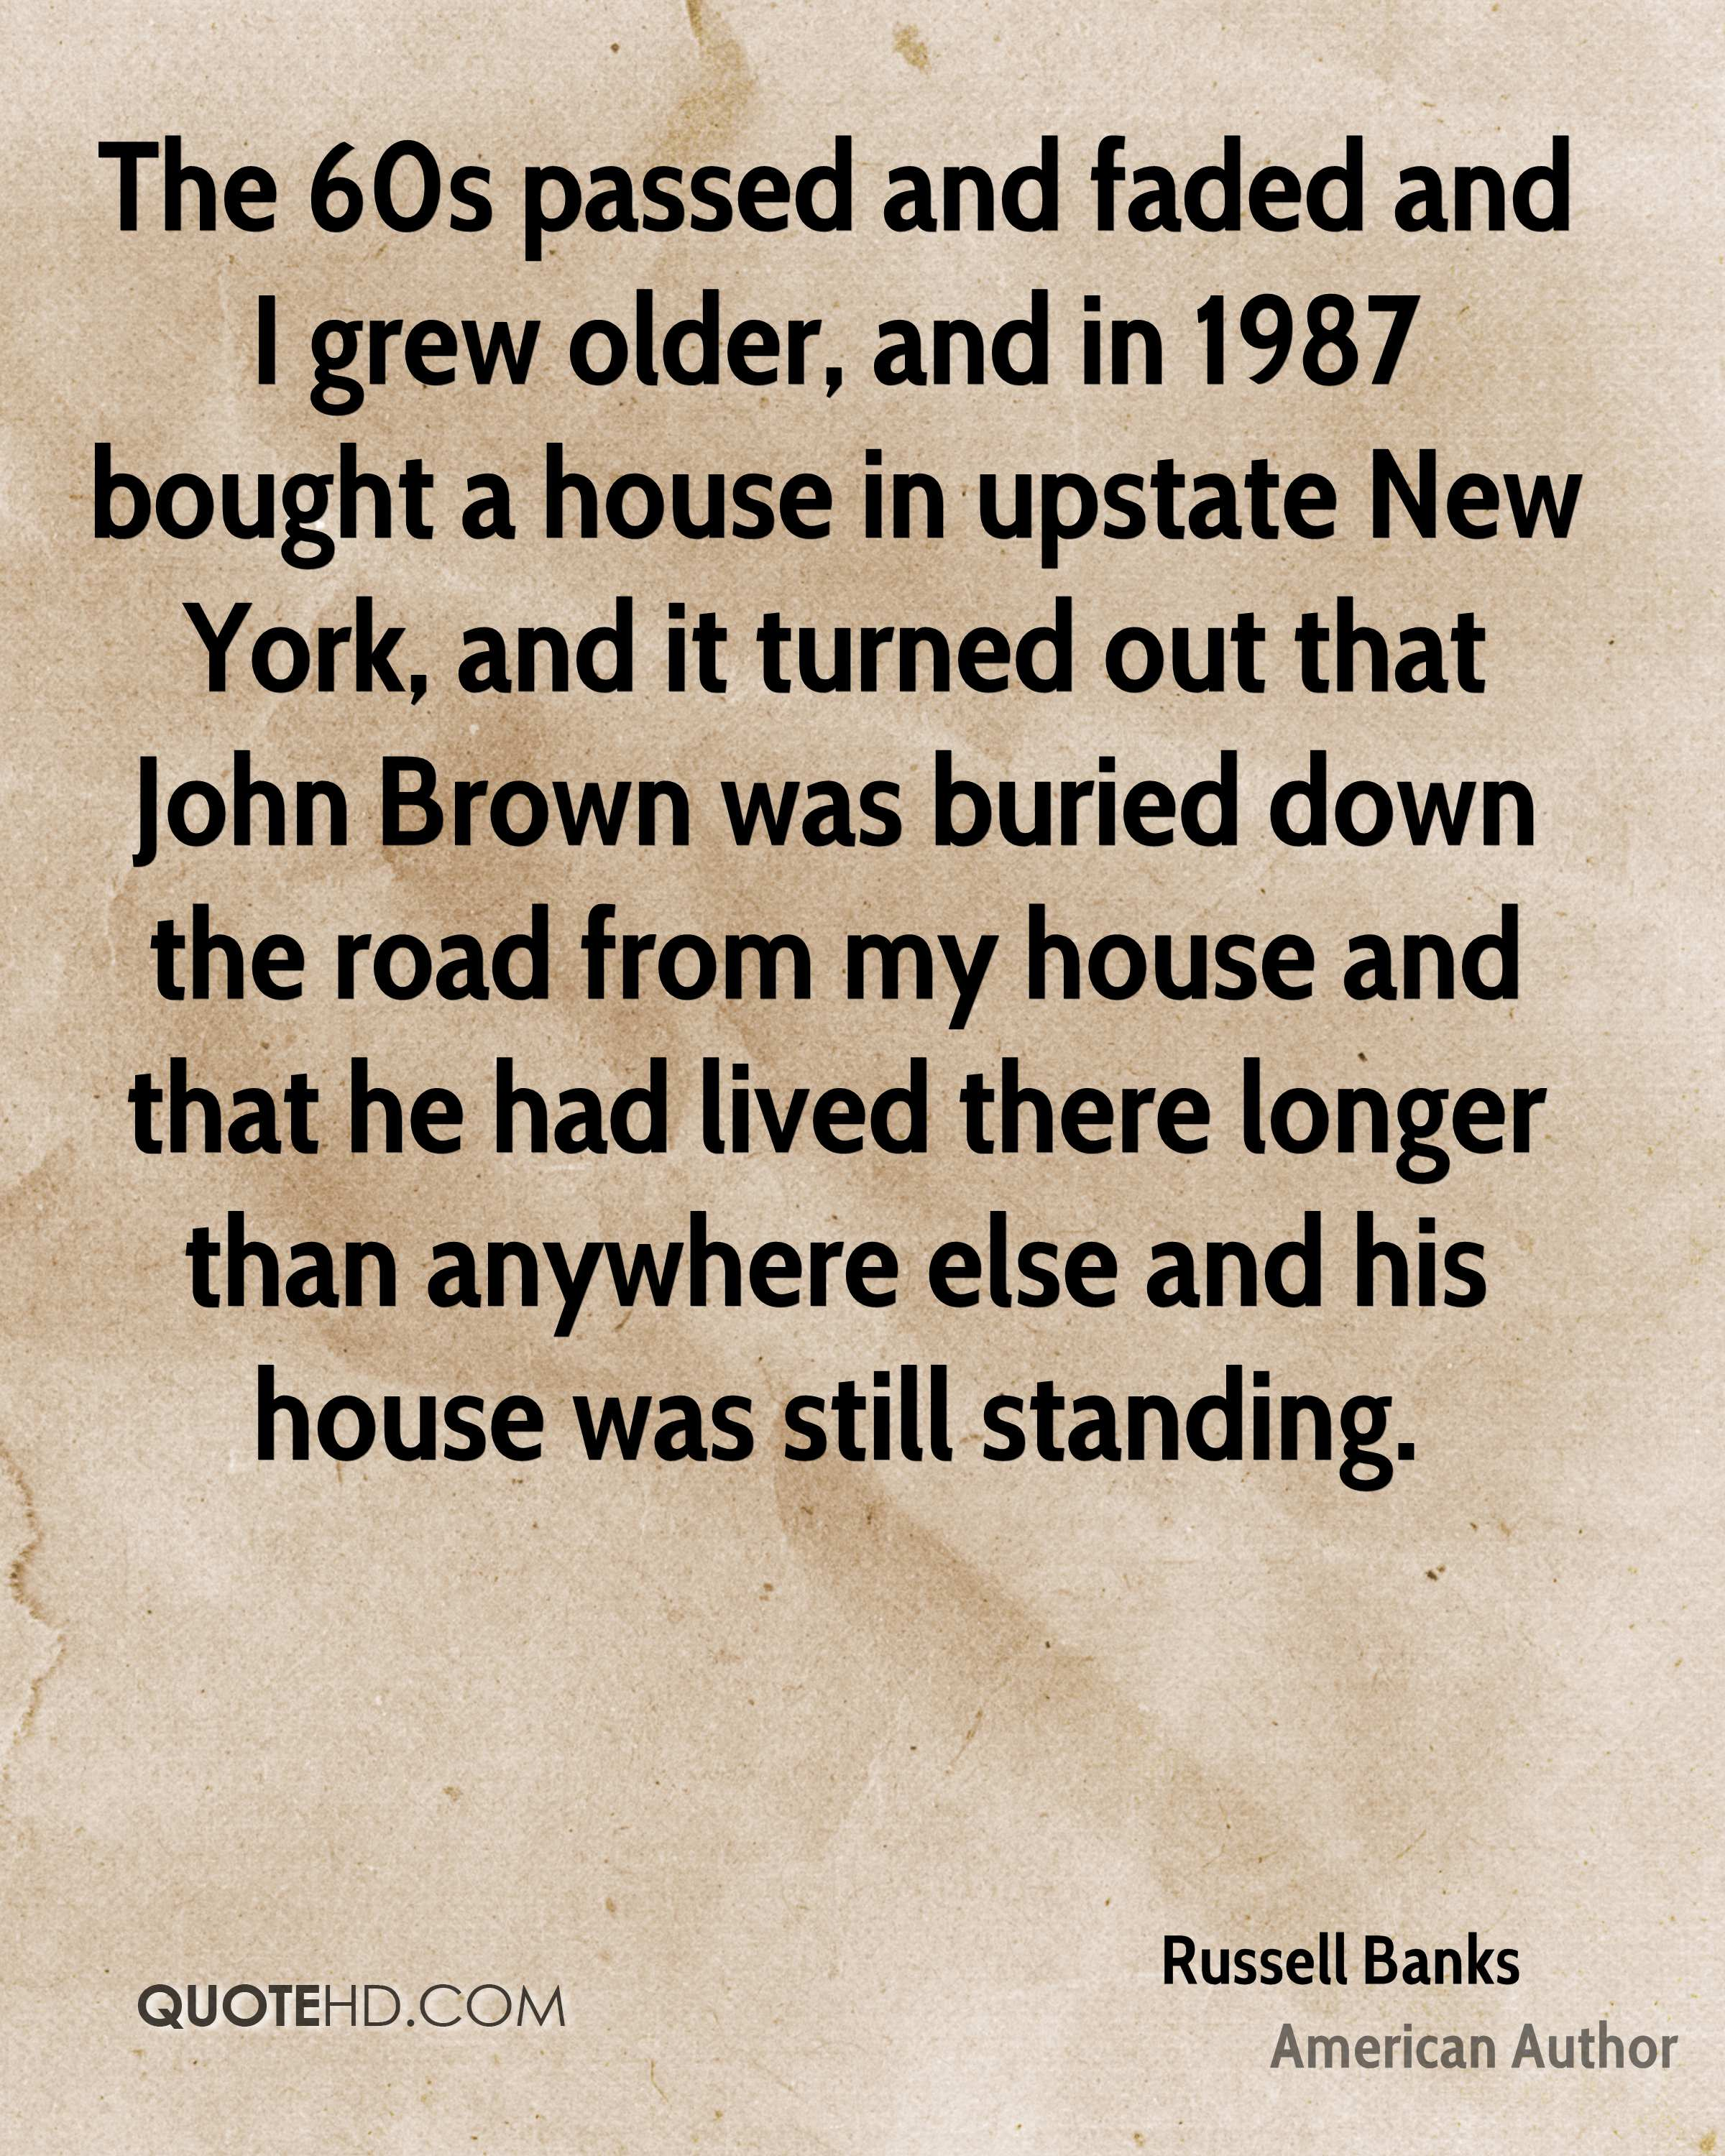 The 60s passed and faded and I grew older, and in 1987 bought a house in upstate New York, and it turned out that John Brown was buried down the road from my house and that he had lived there longer than anywhere else and his house was still standing.